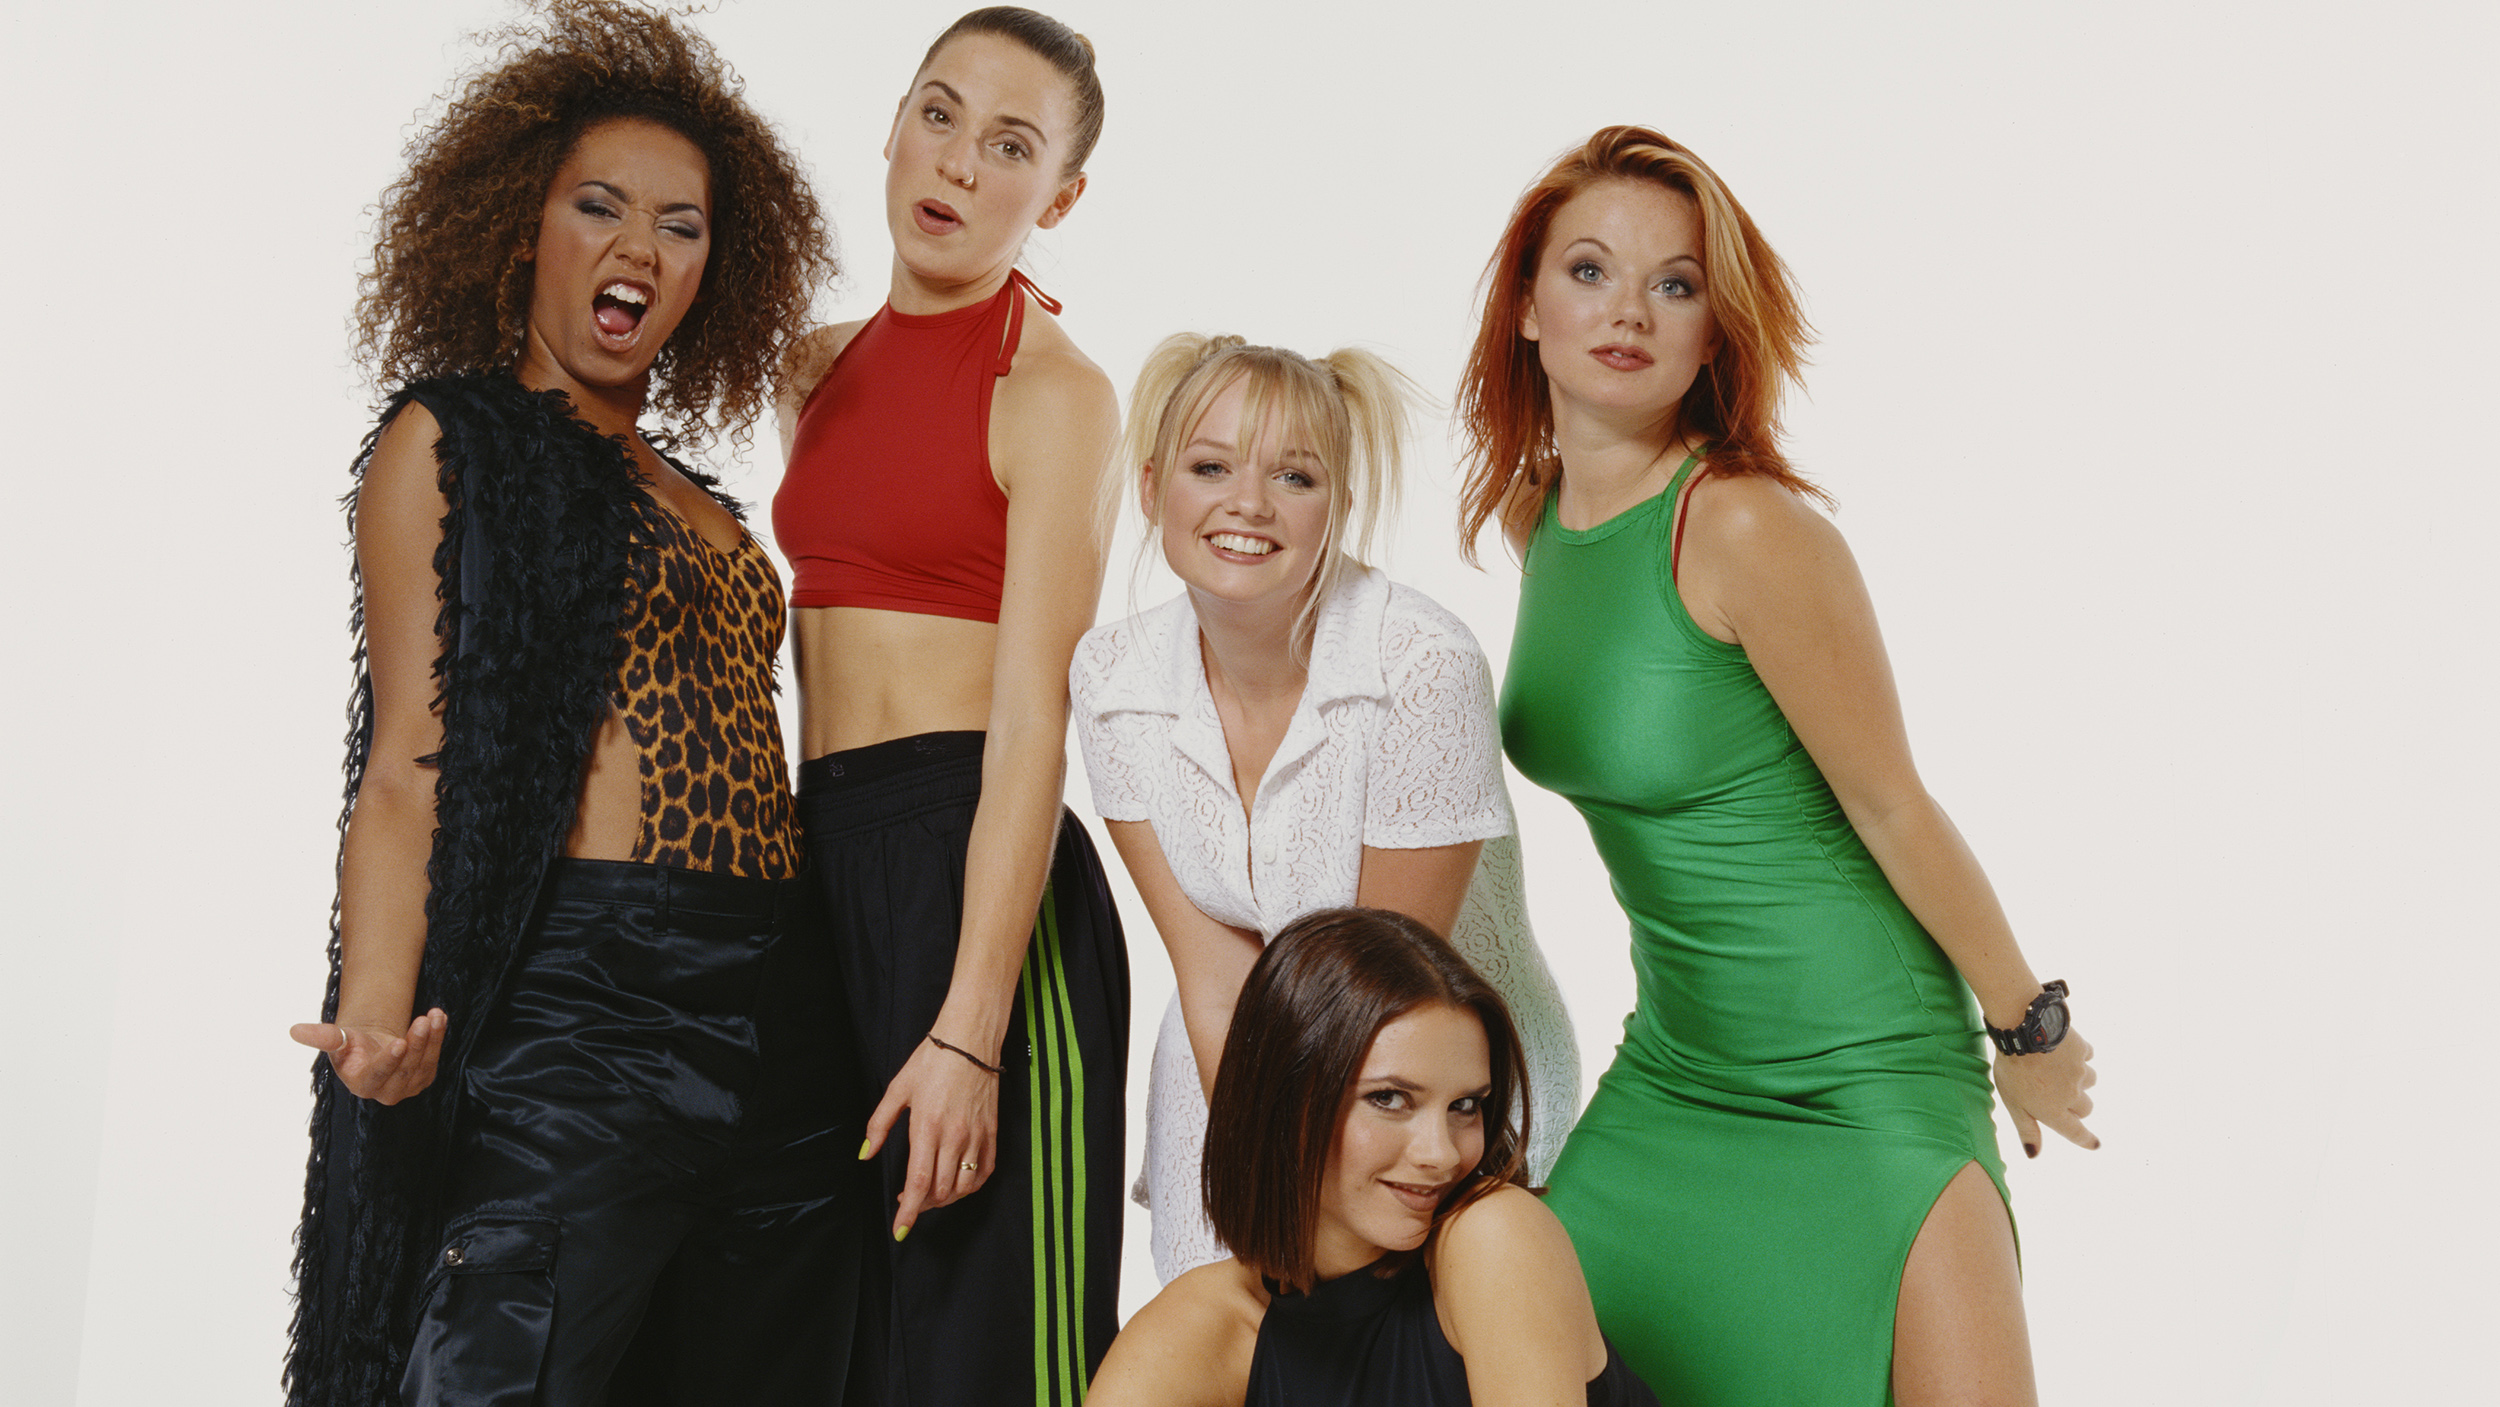 Spice girls tour dates